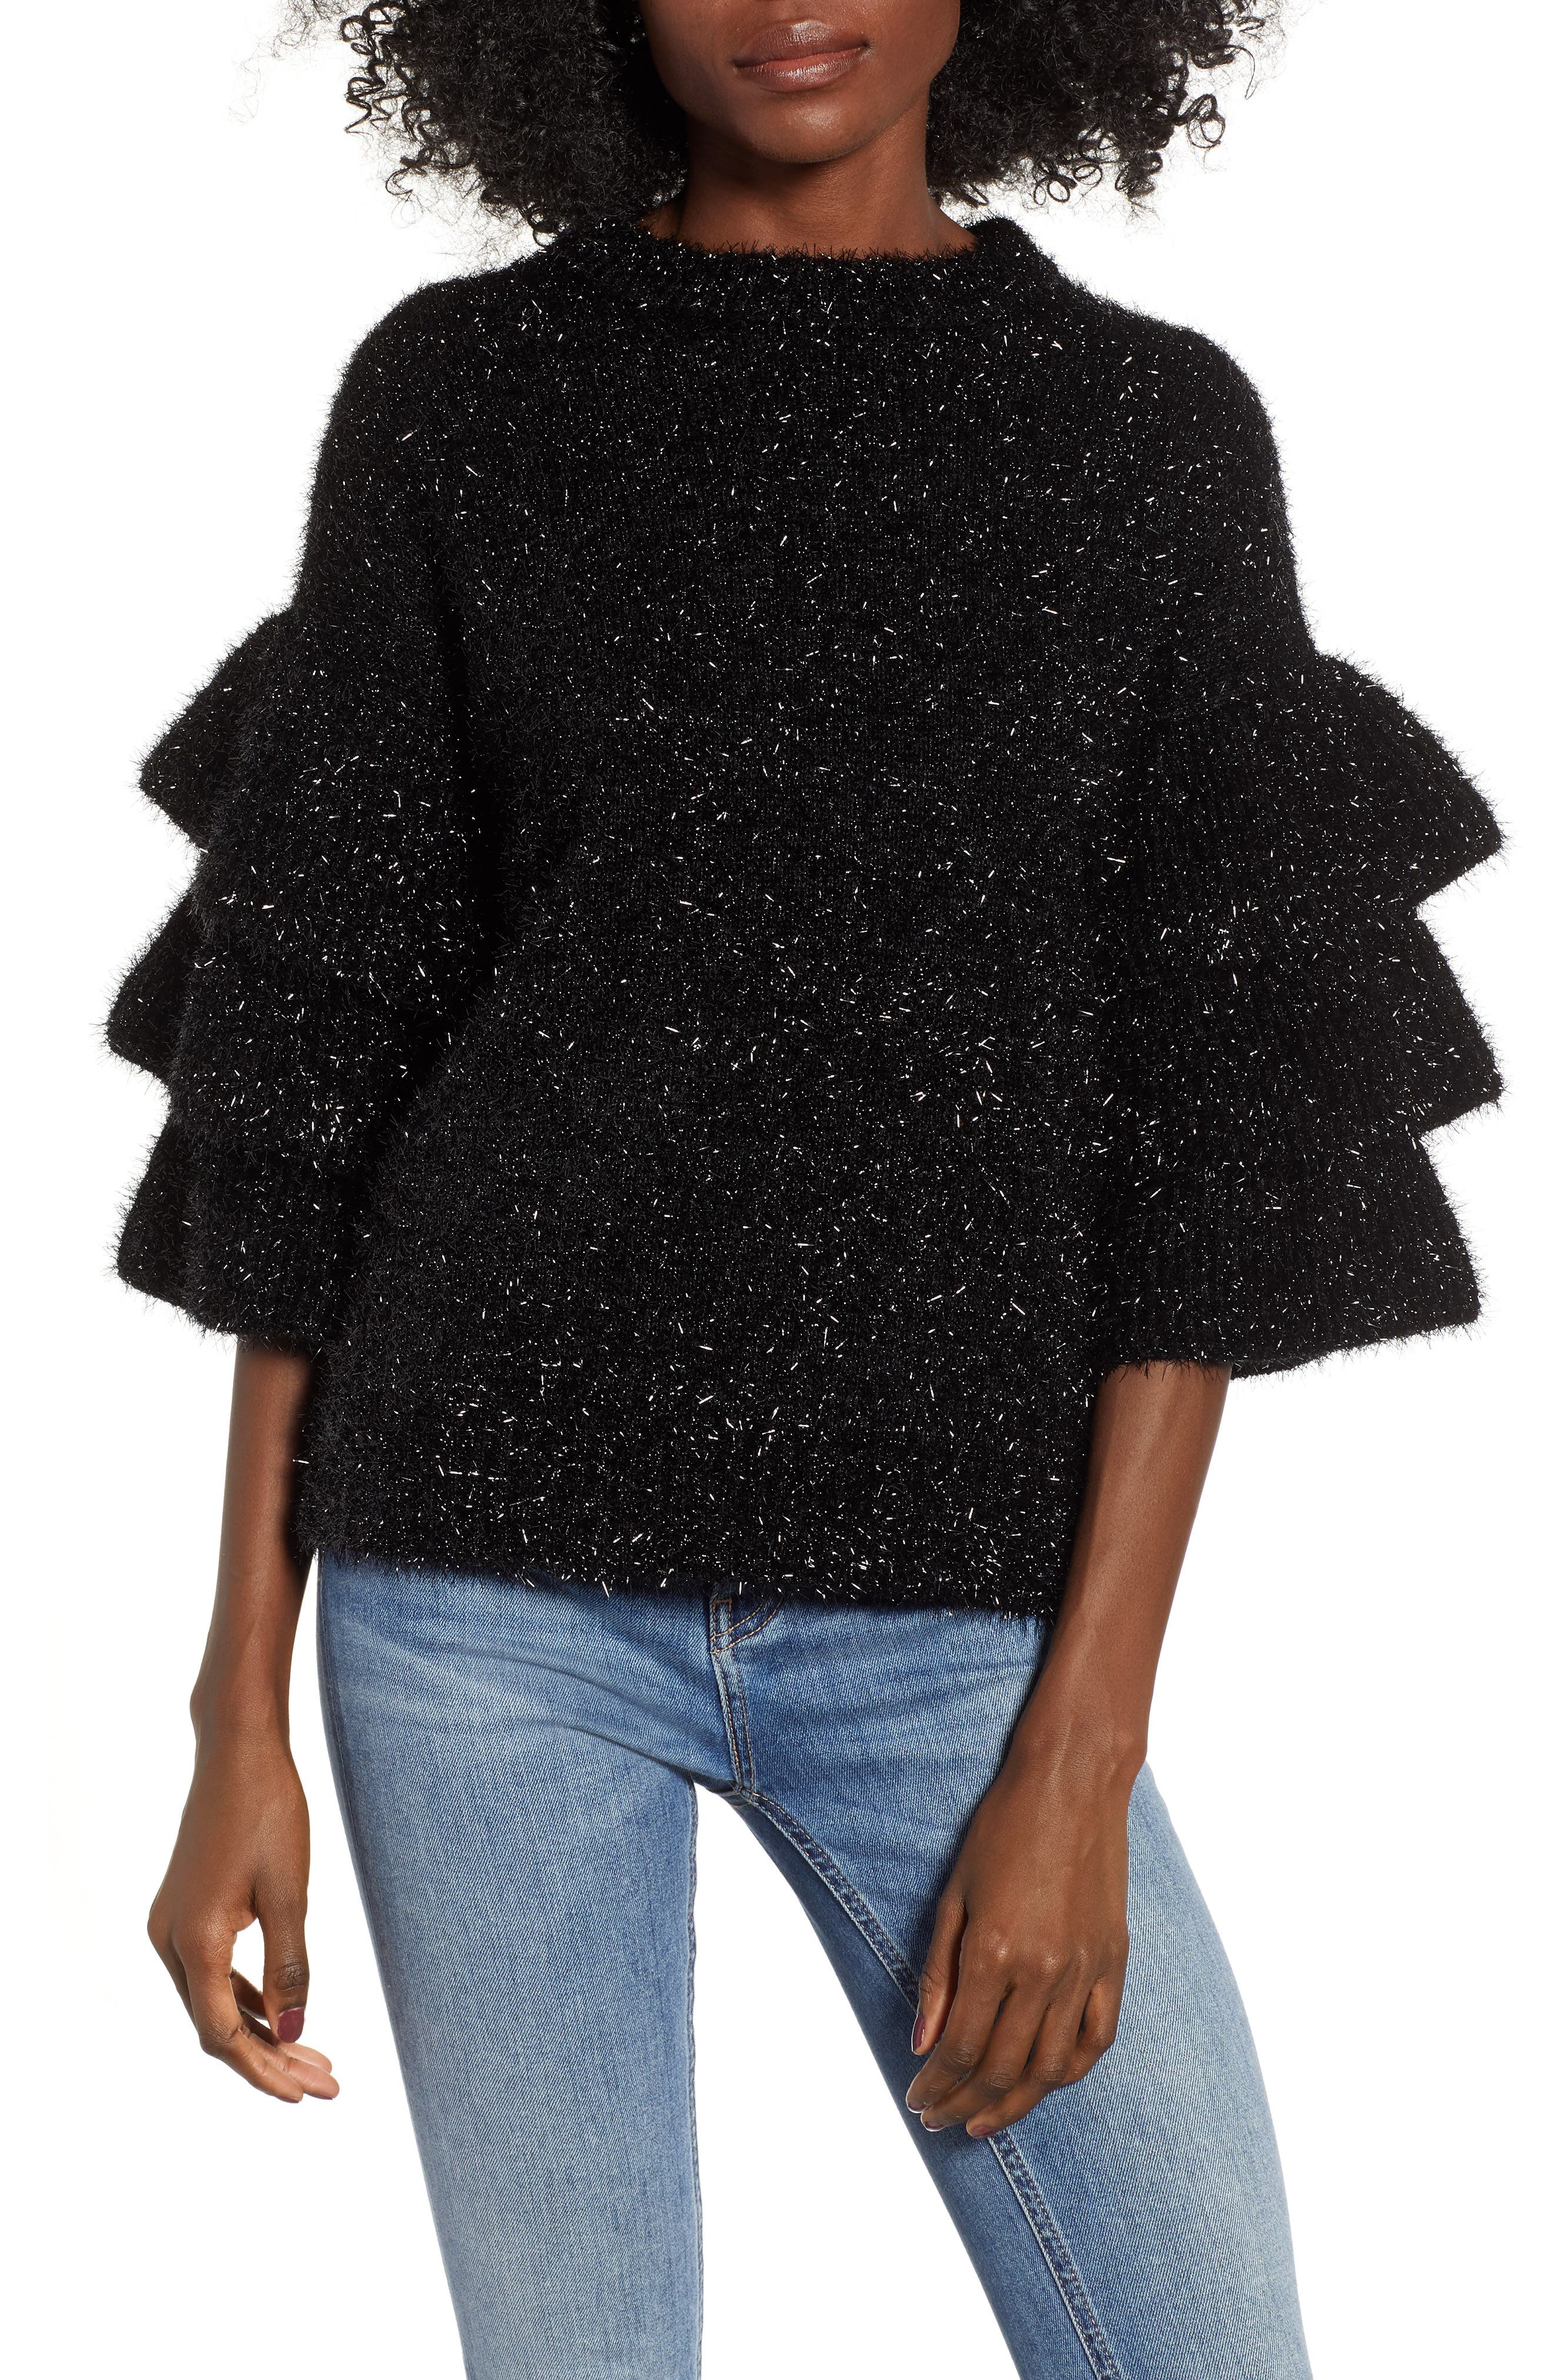 Tiered Sleeve Sweater,                             Main thumbnail 1, color,                             BLACK